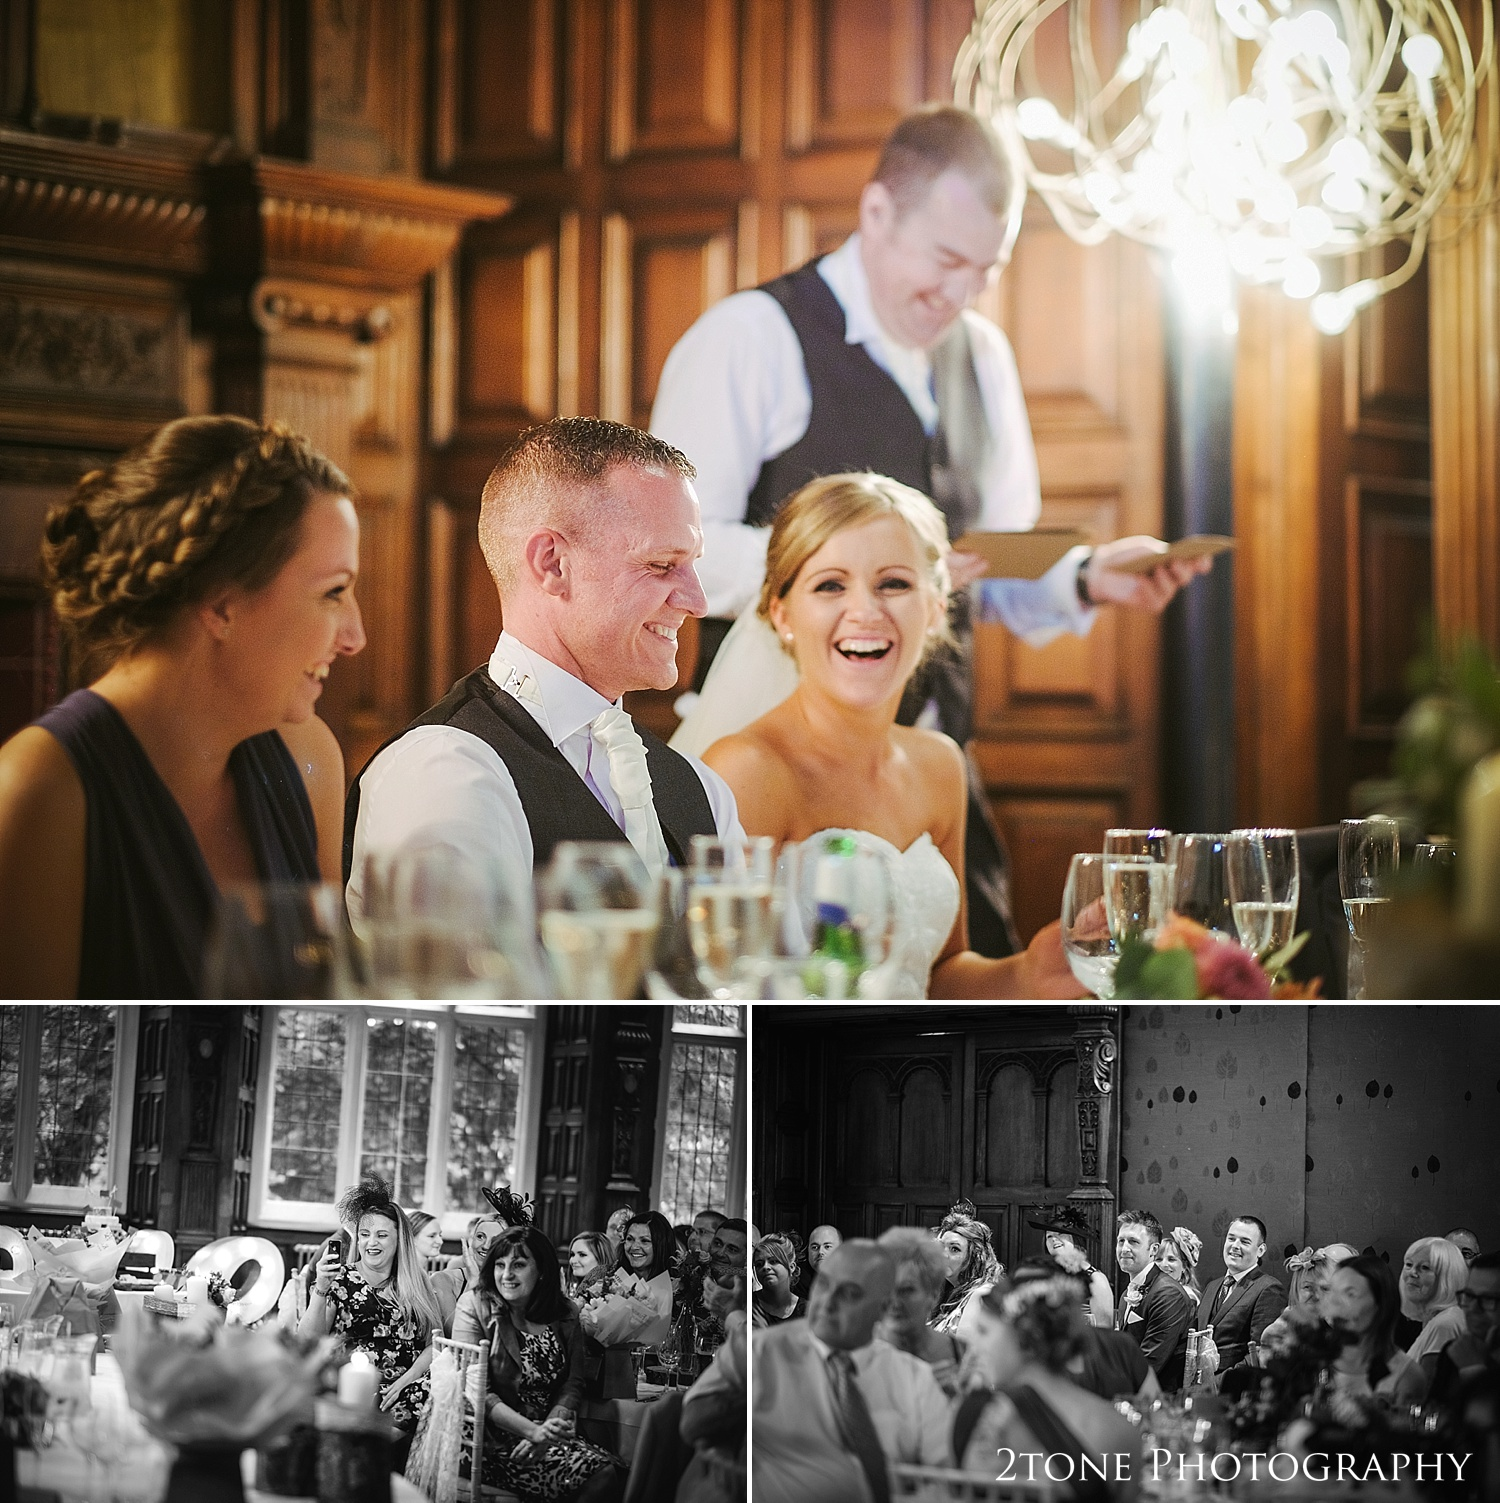 The best man's speech at Jesmond Dene House in Newcastle by 2tone Photography www.2tonephotography.co.uk